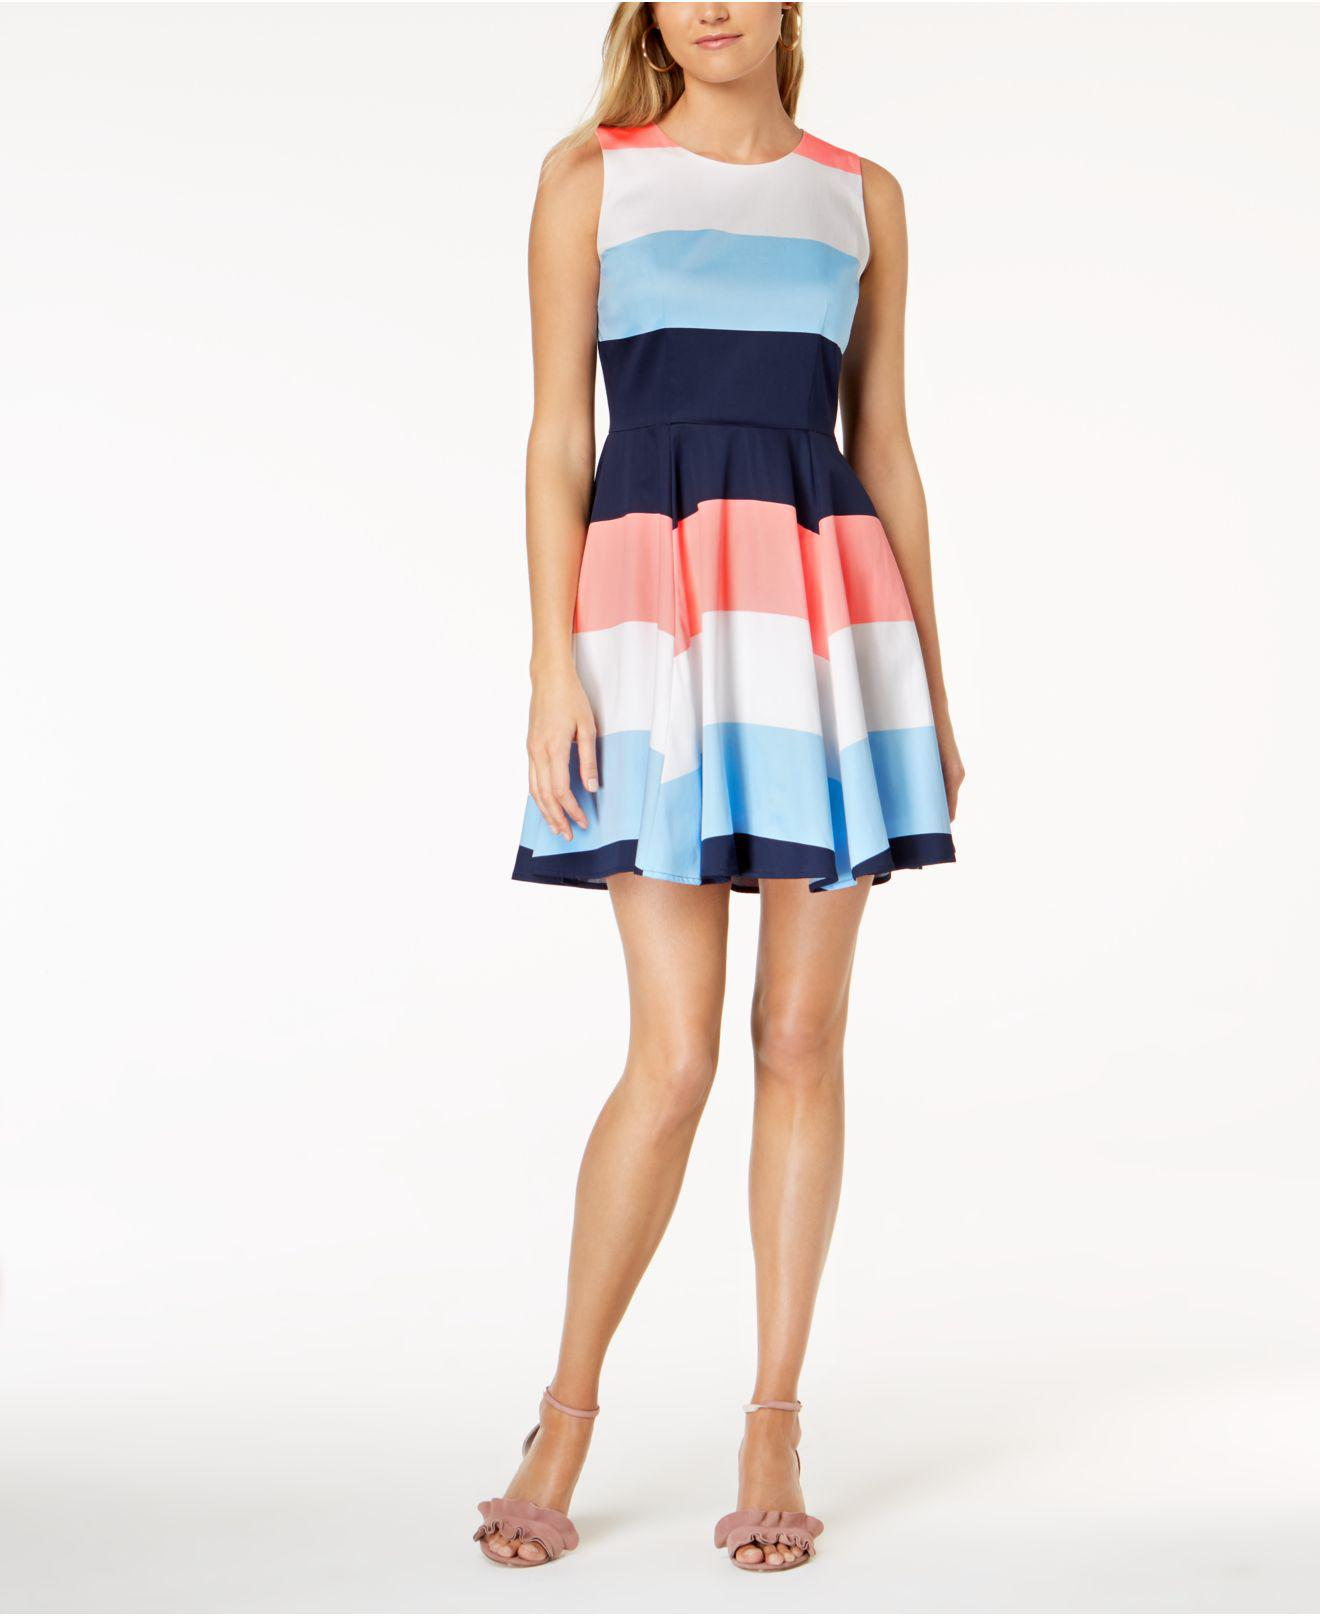 fe5b928a5290 Lyst - Maison Jules Colorblocked Fit   Flare Dress